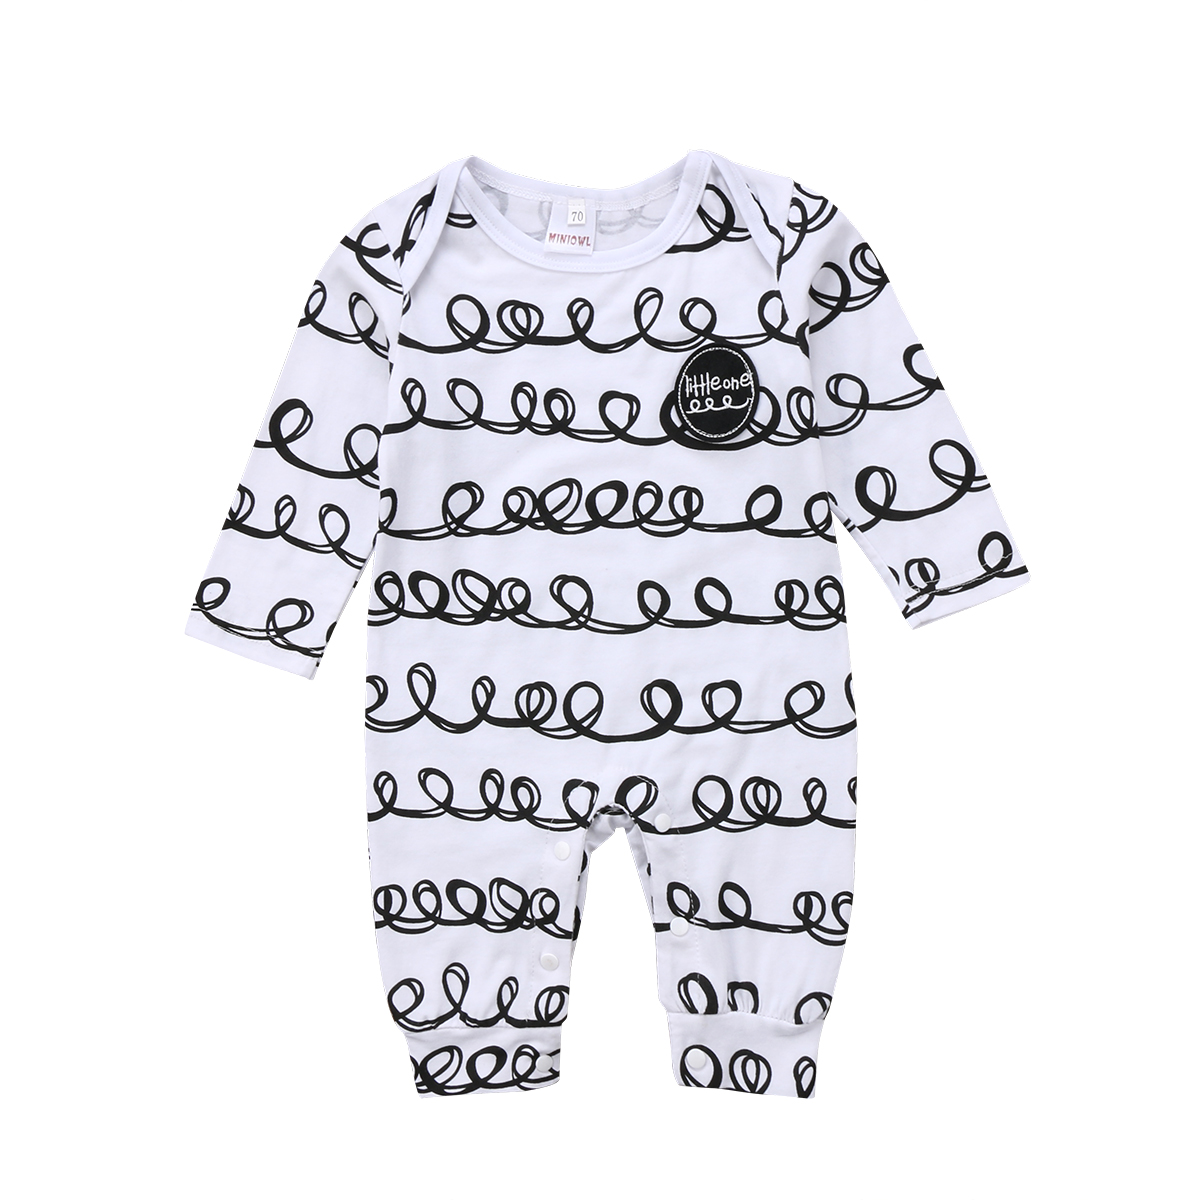 2018 Newborn Infant Baby Girls Boy Cute Long Sleeves Romper Casual Jumpsuit Clothes Outfit Set